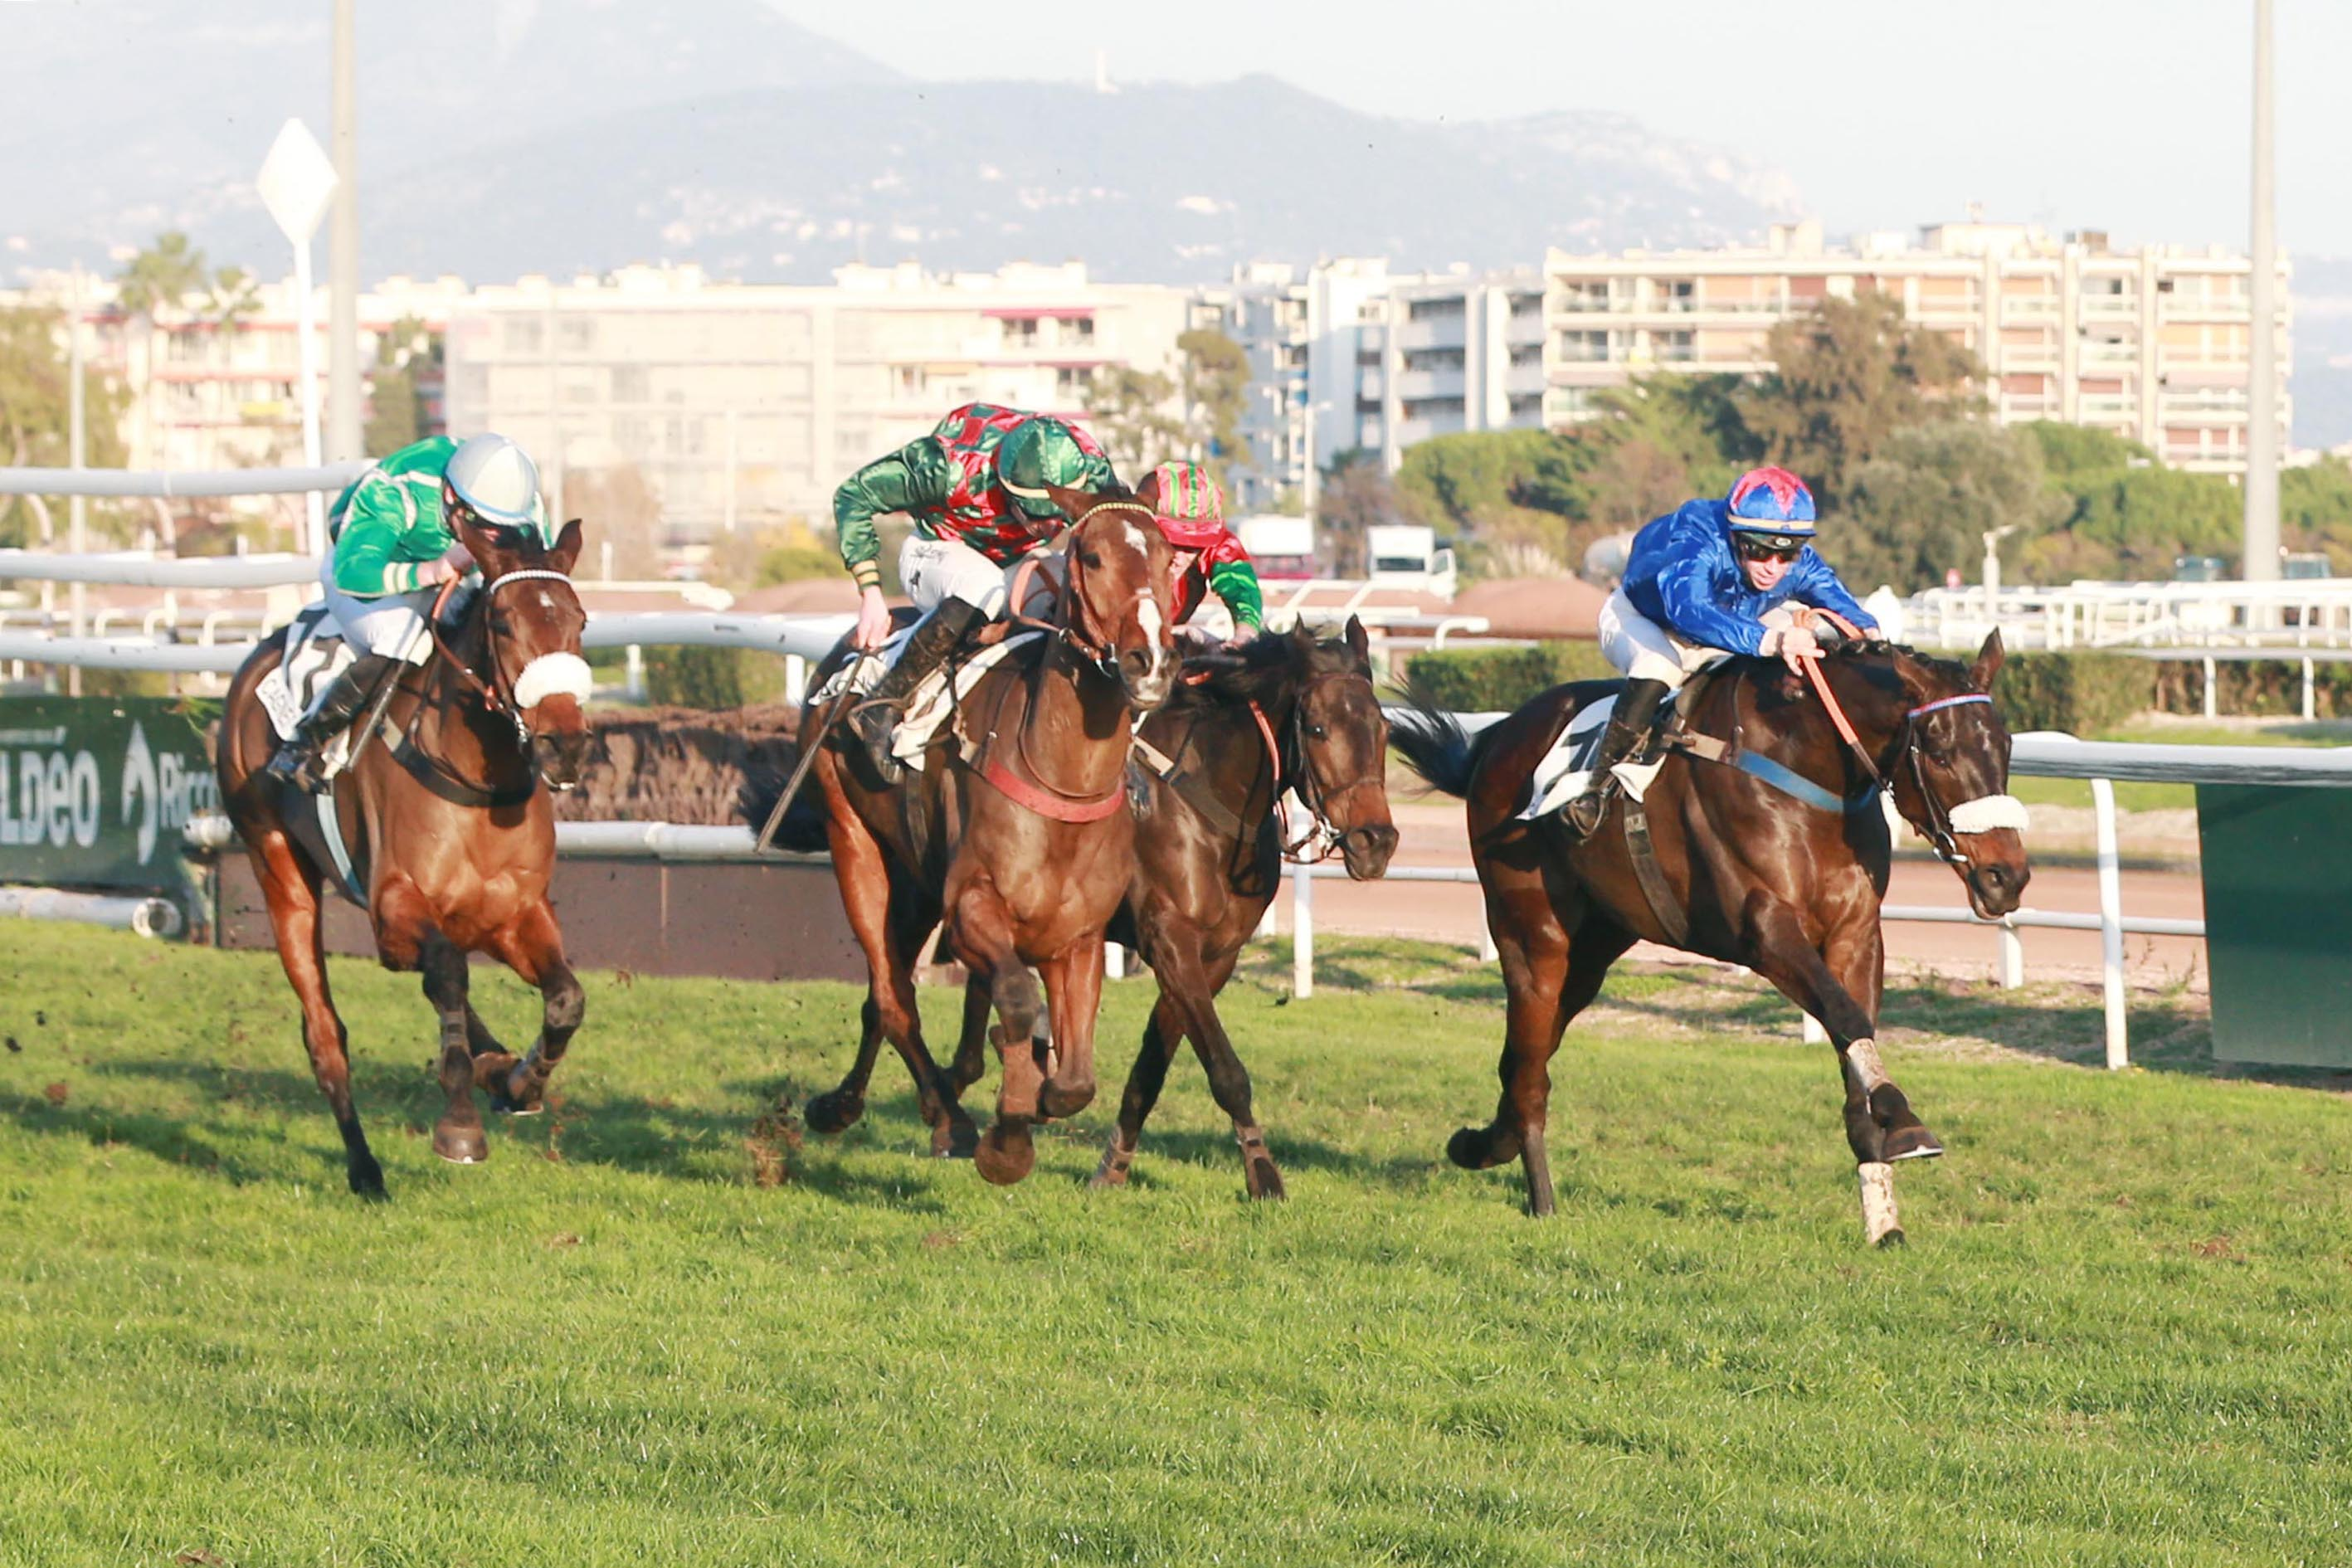 PRIX DOMINGO PEREA (HAIES) - The Golden Boy rentre et gagne